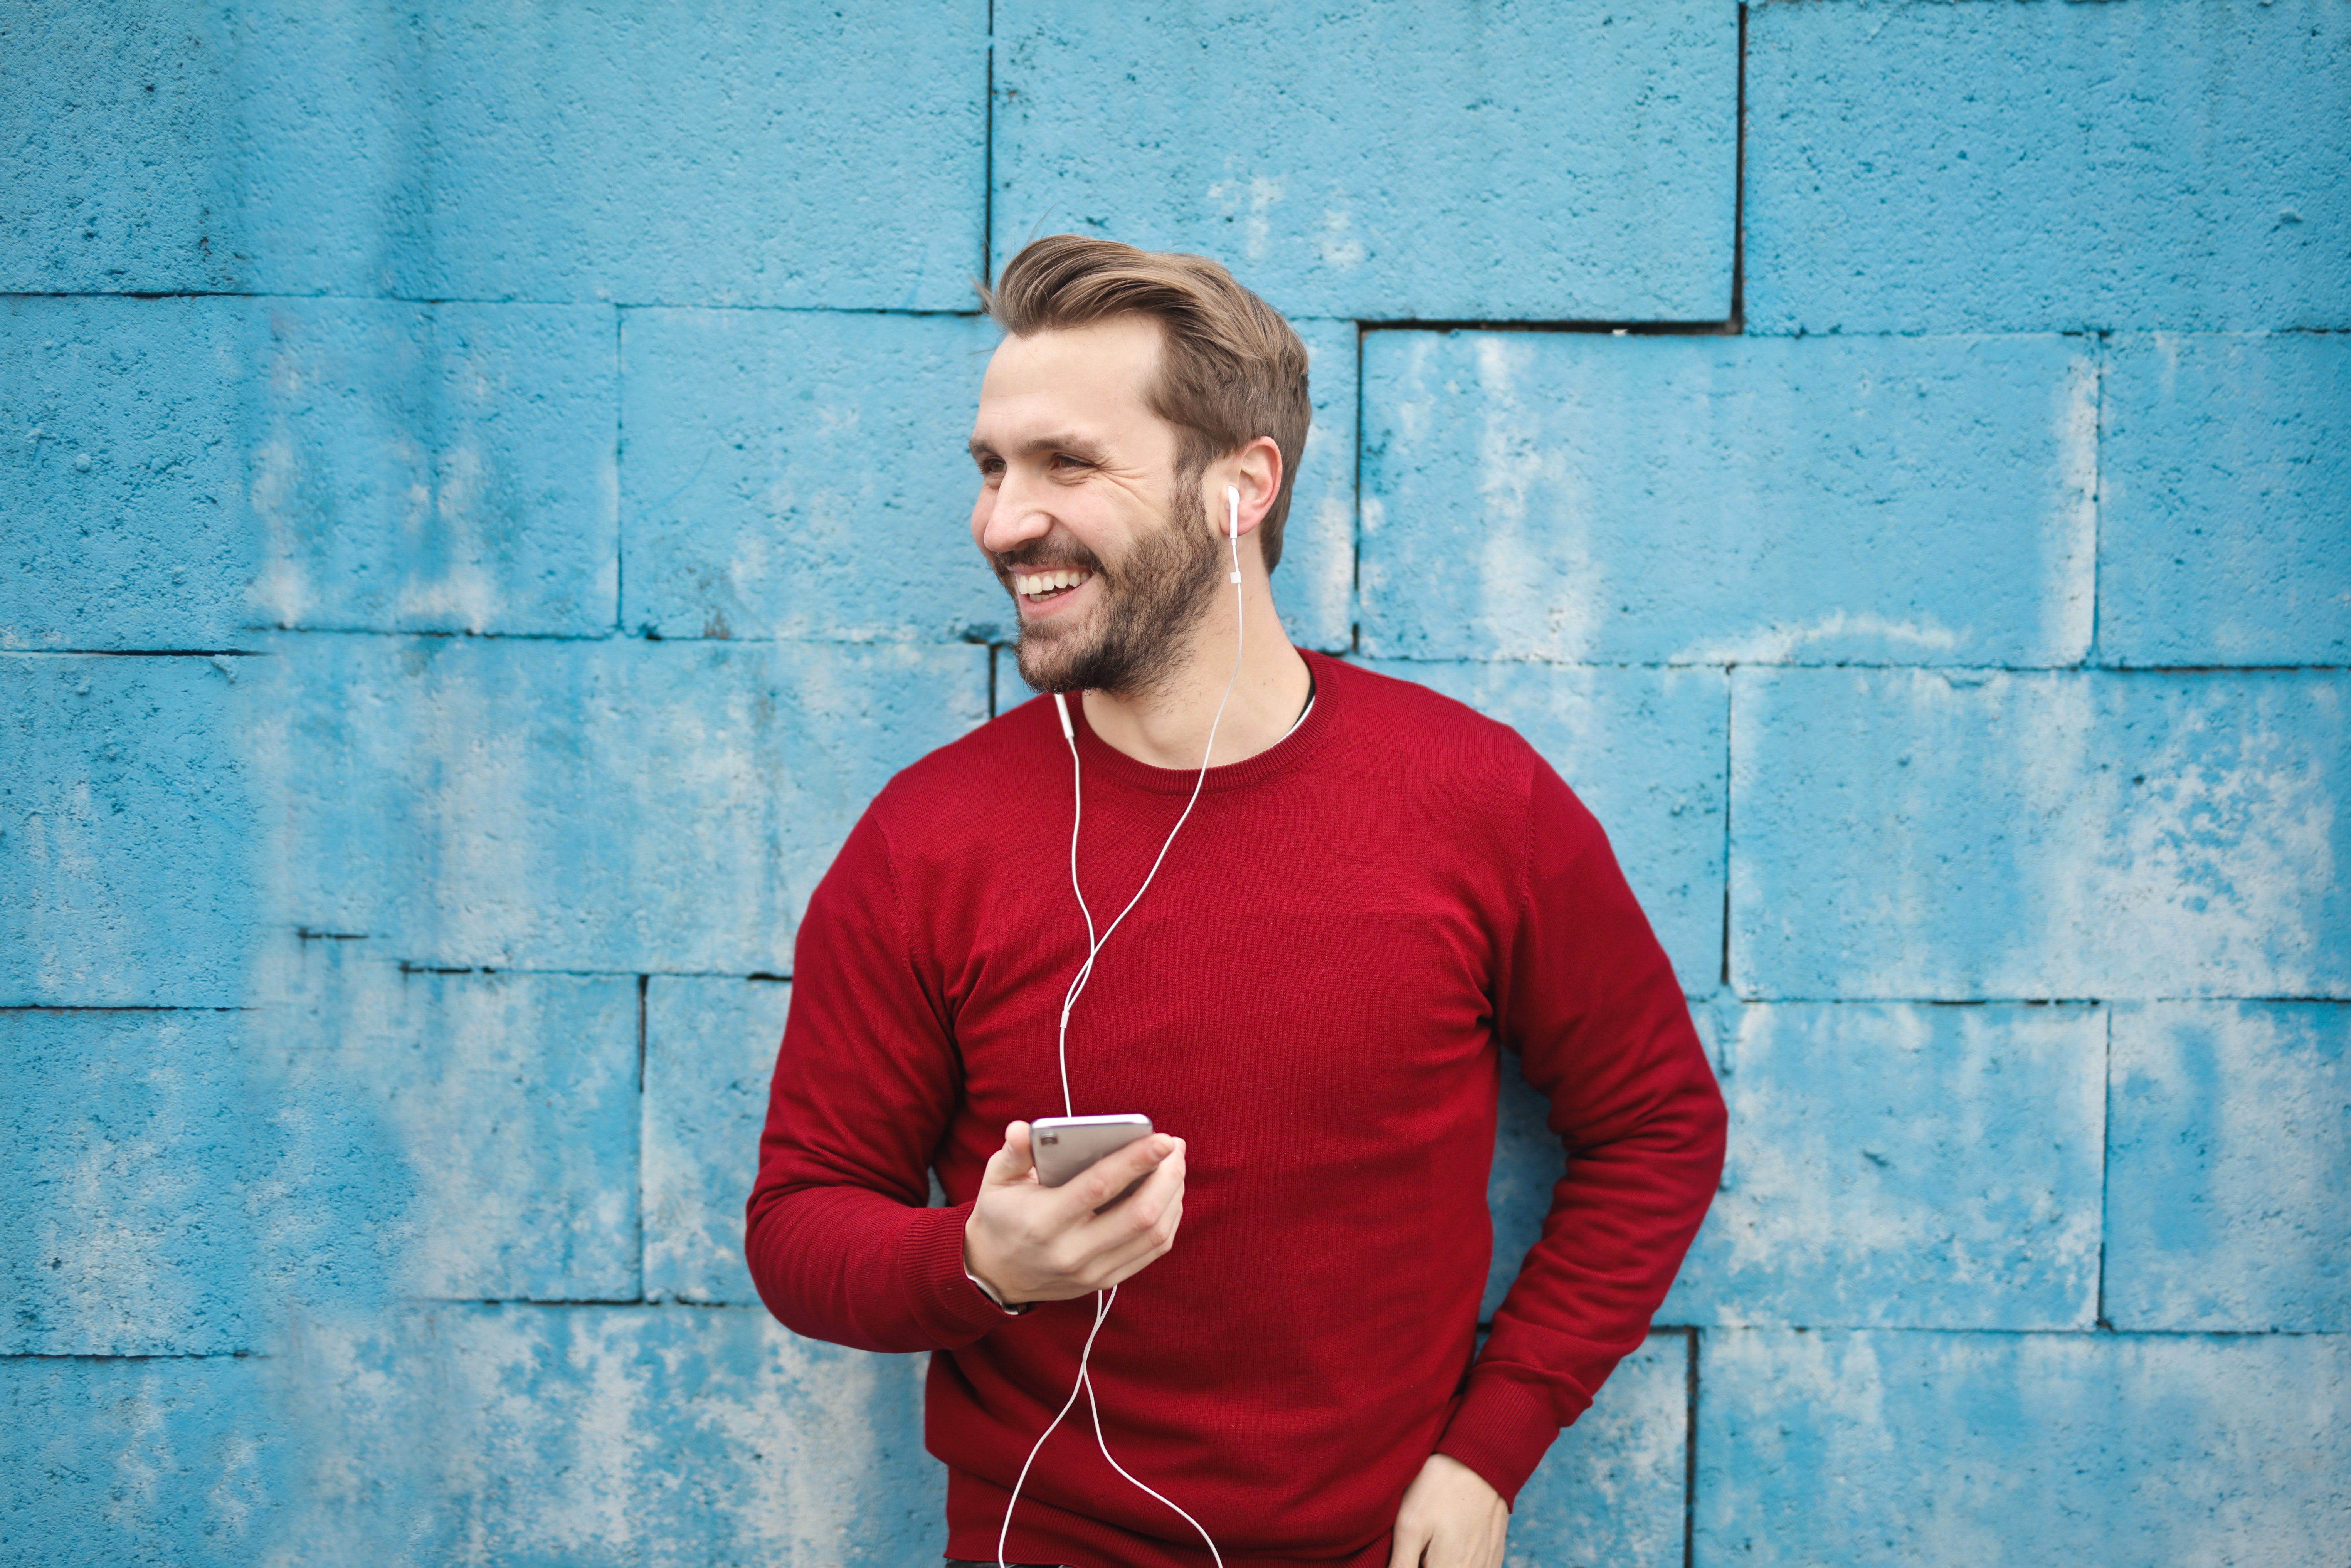 5 Podcasts For The Stylish Men Of Today To Tune Into